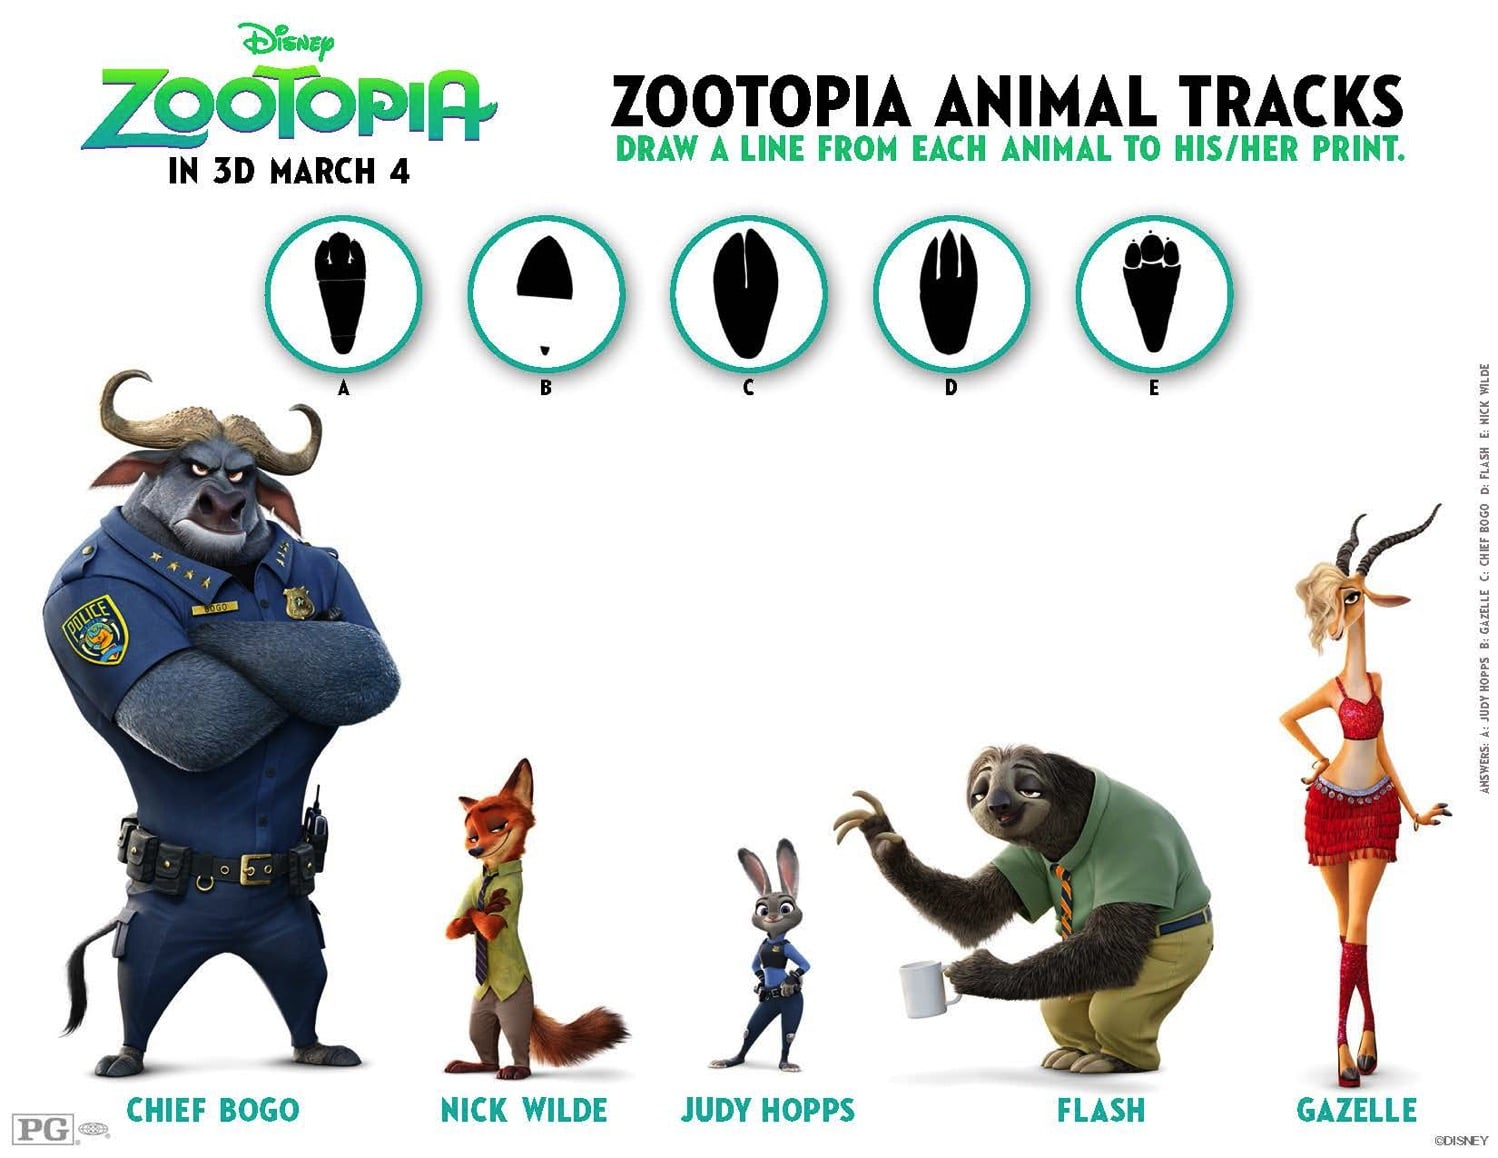 https://www.reallyareyouserious.com/wp-content/uploads/2016/03/Zootopia-tracks-match-up.pdf